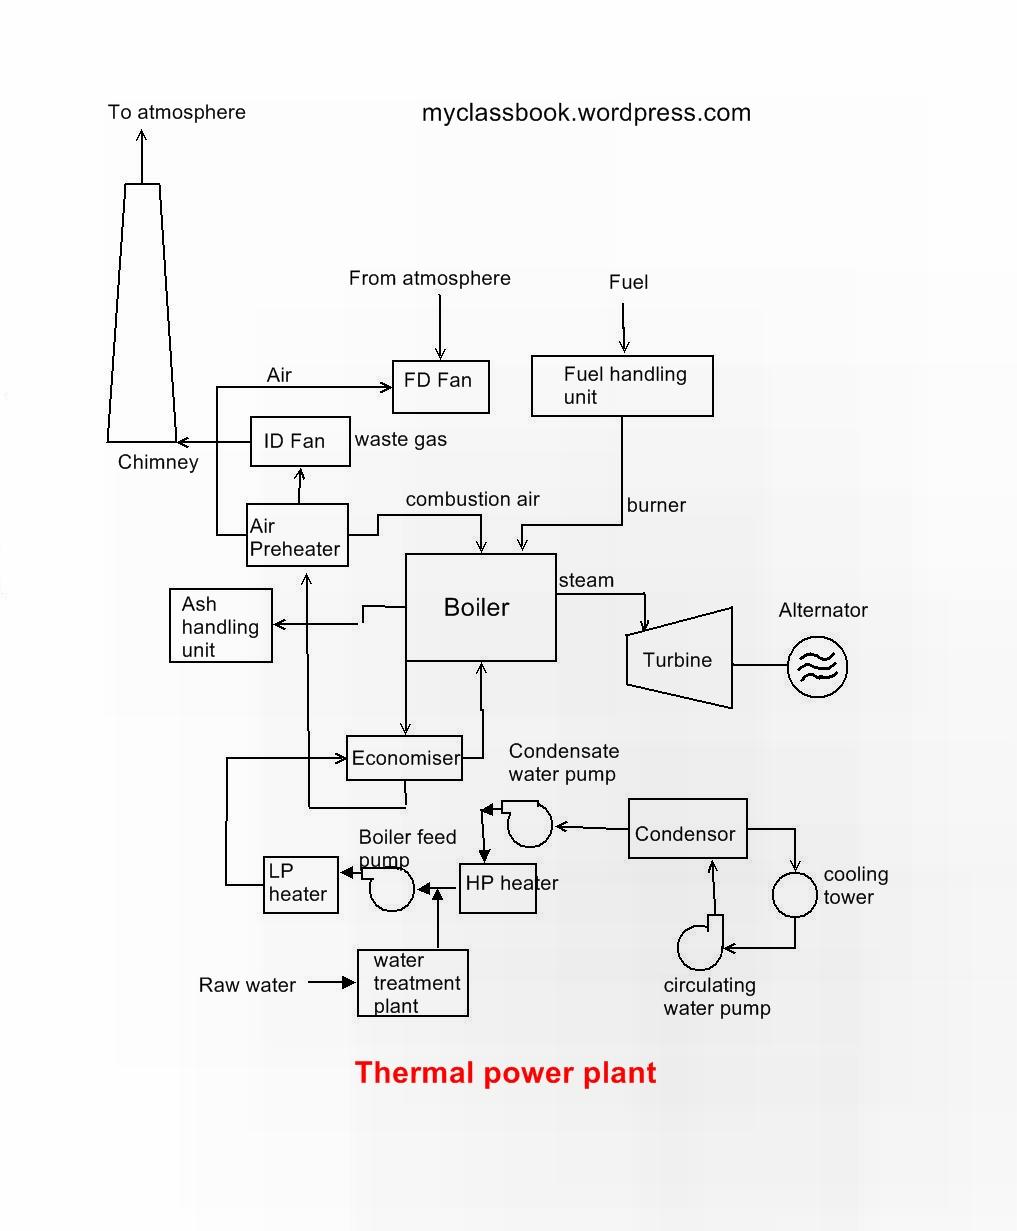 Construction and working of thermal power plant myclassbook Cooling Tower Schematic Diagram Fossil Fuel Power Plant Diagram Mechanical Schematic Diagram on thermal power plant schematic diagram